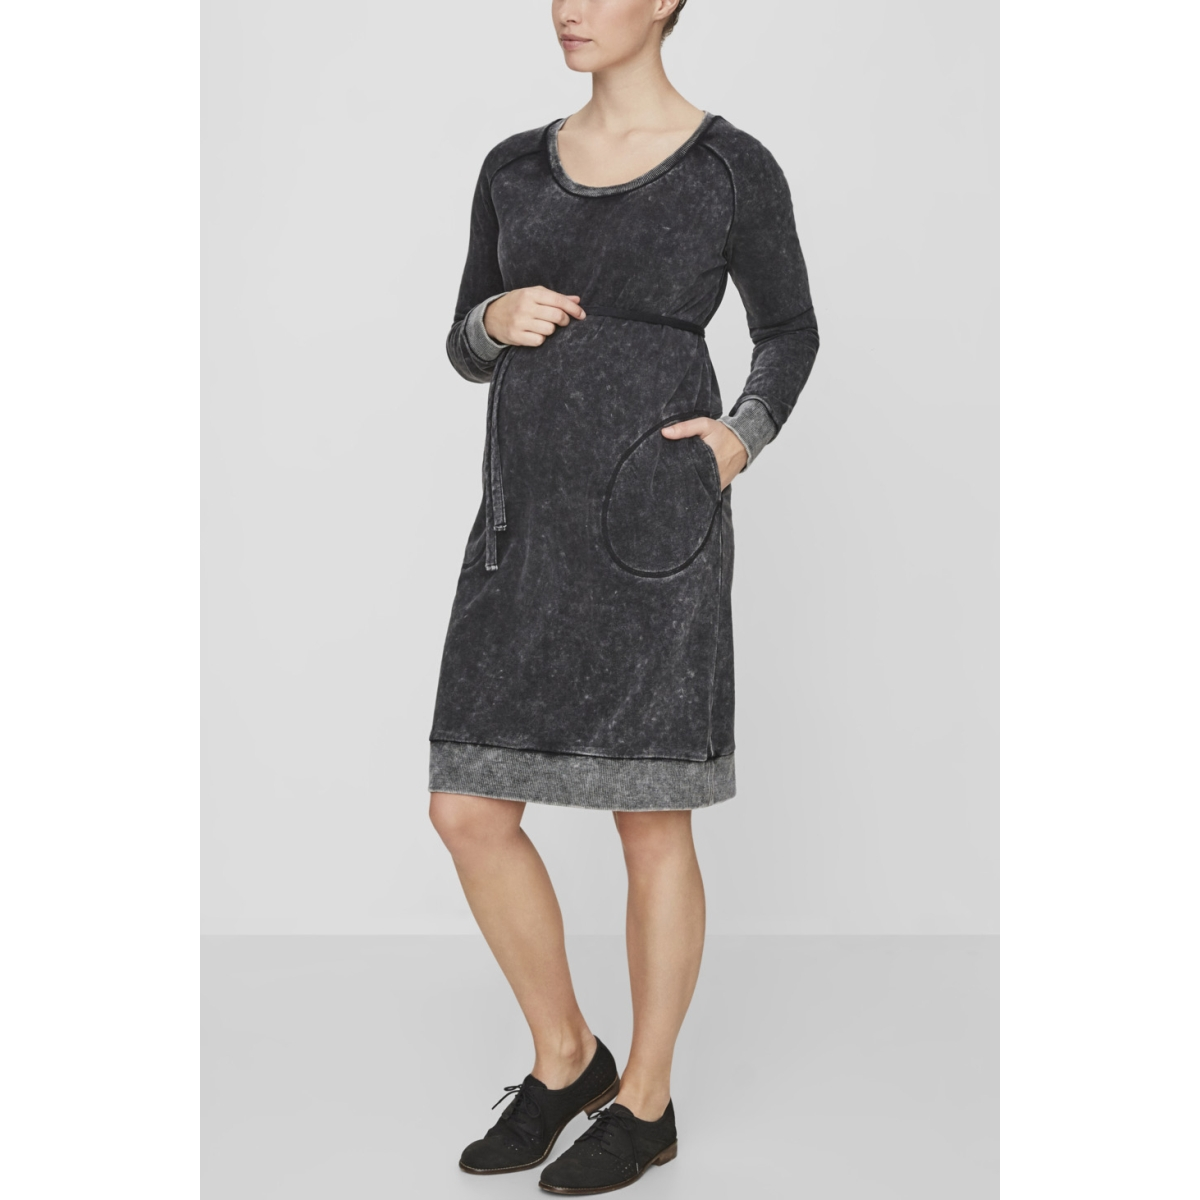 mljamille l/s above knee dress 20007681 mama-licious positie jurk black/washed